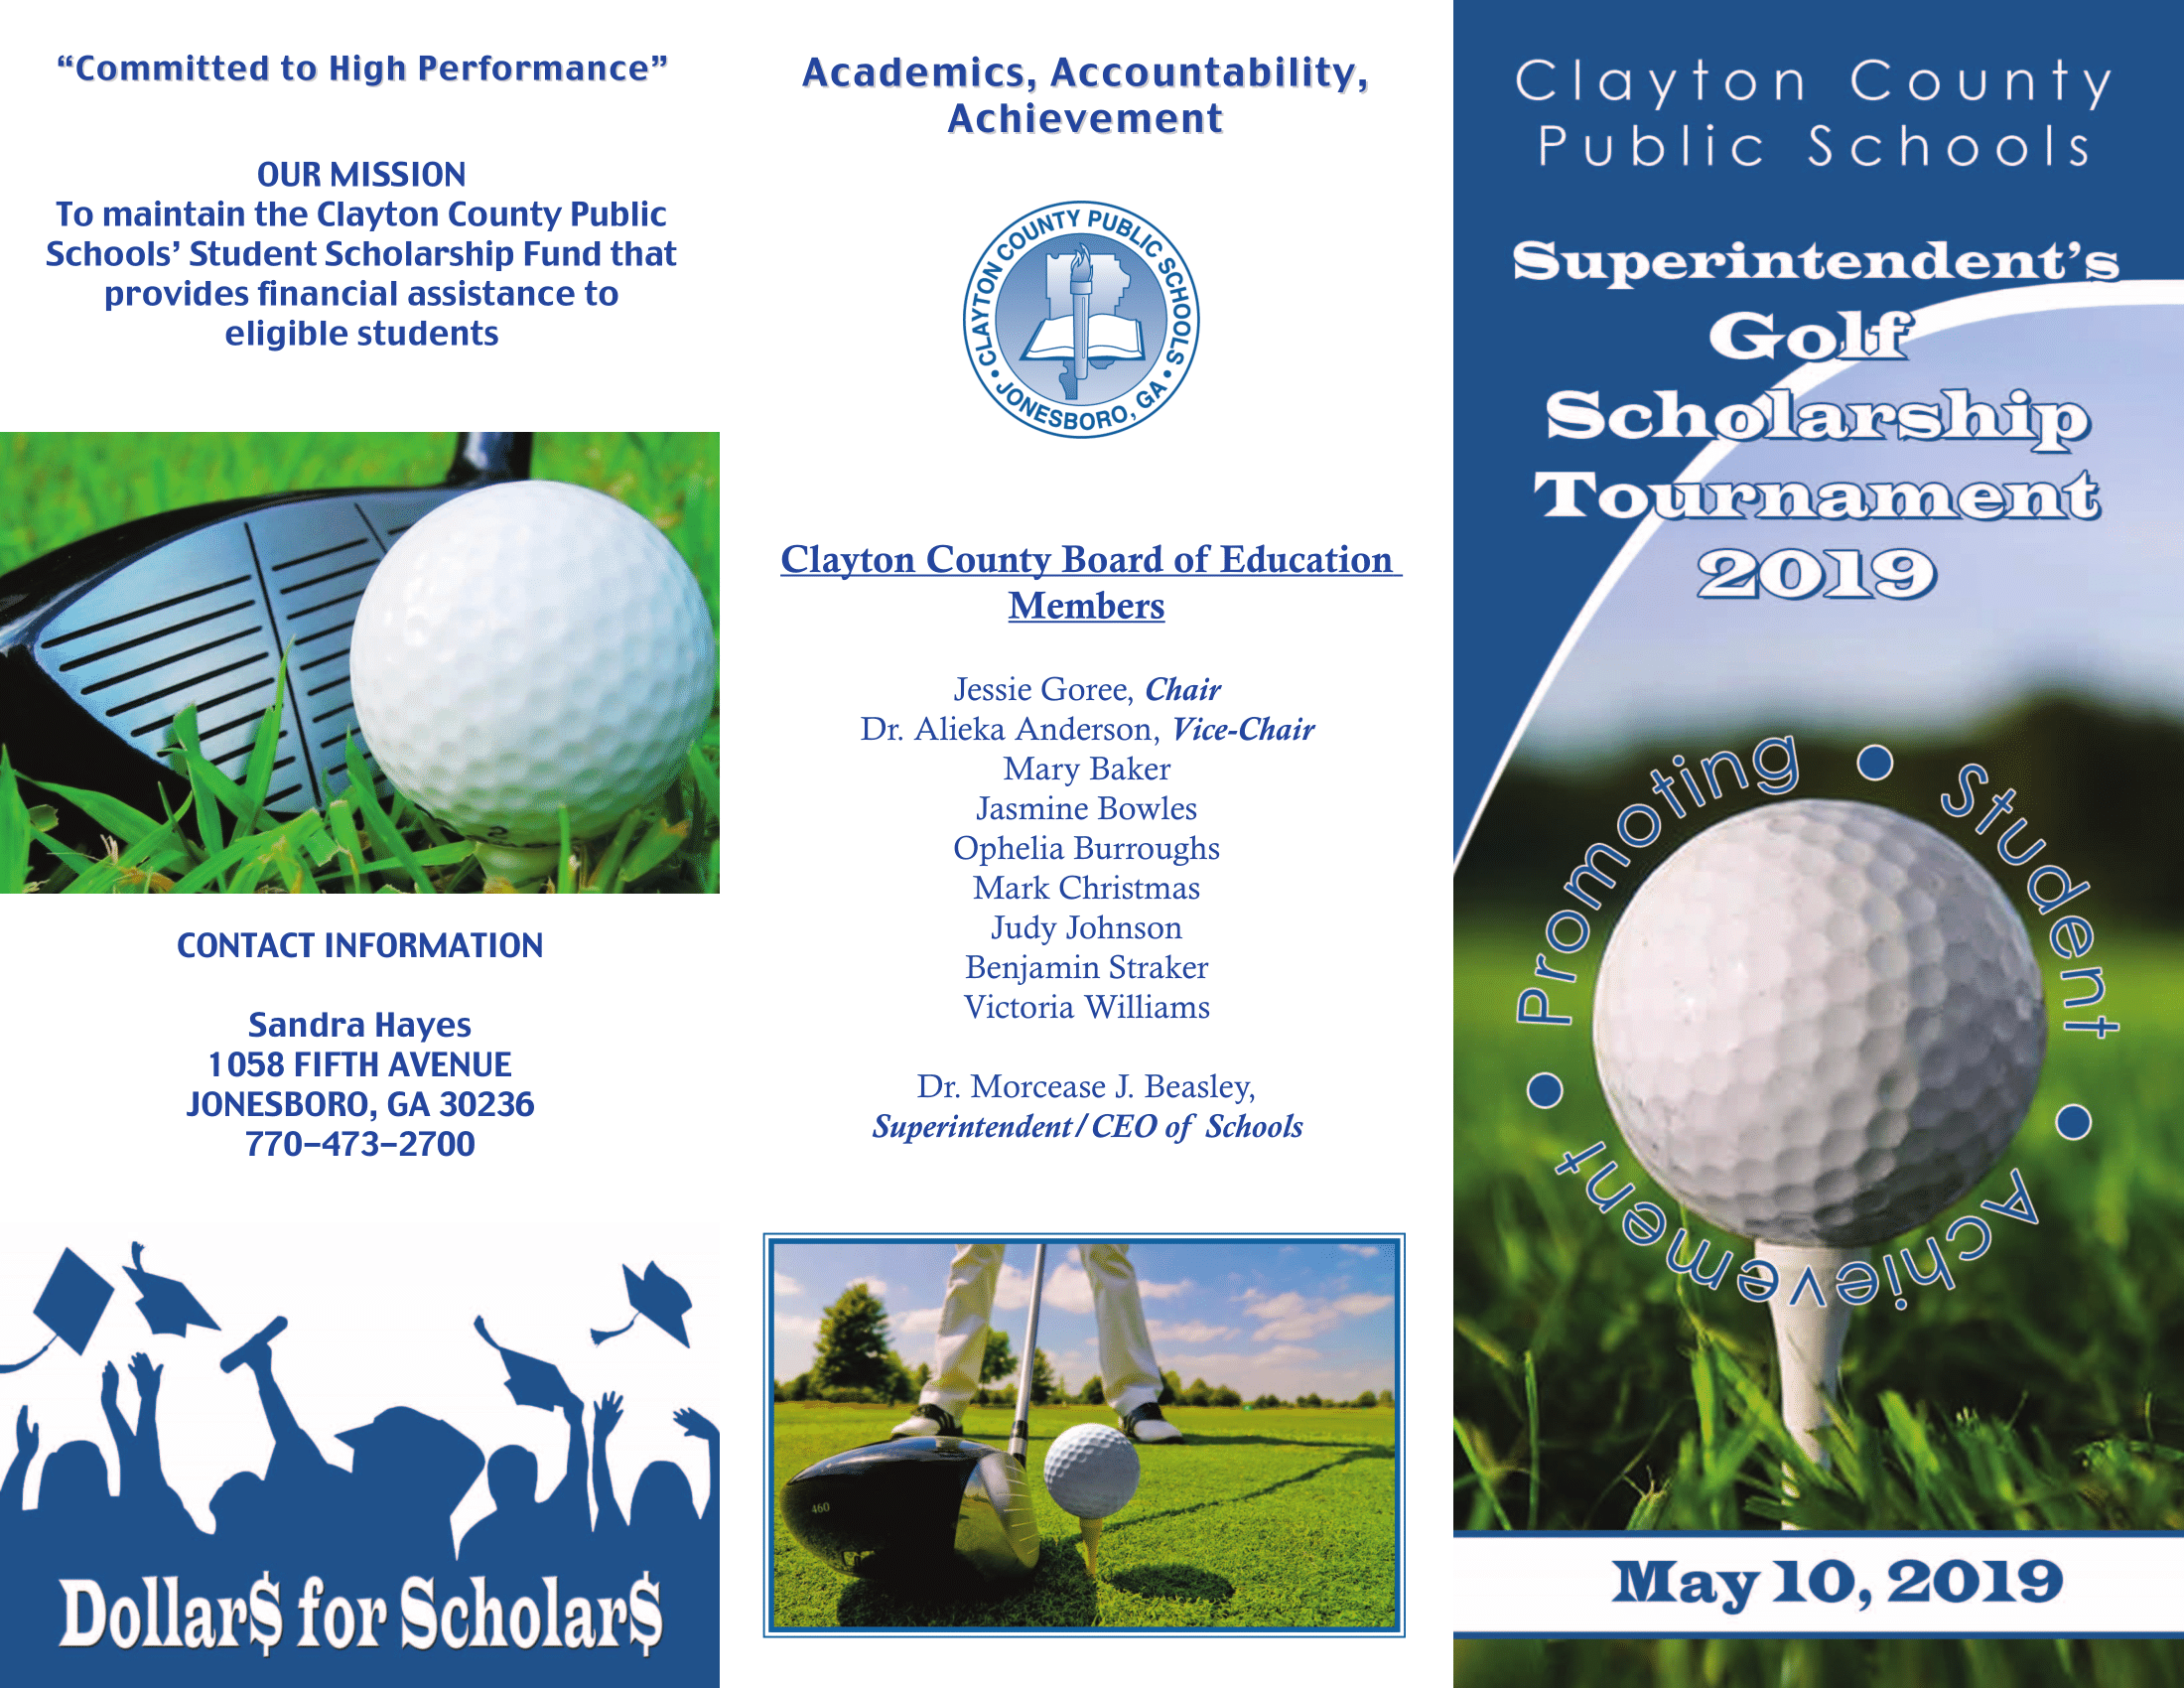 Superintendent's Golf Scholarship Tournament